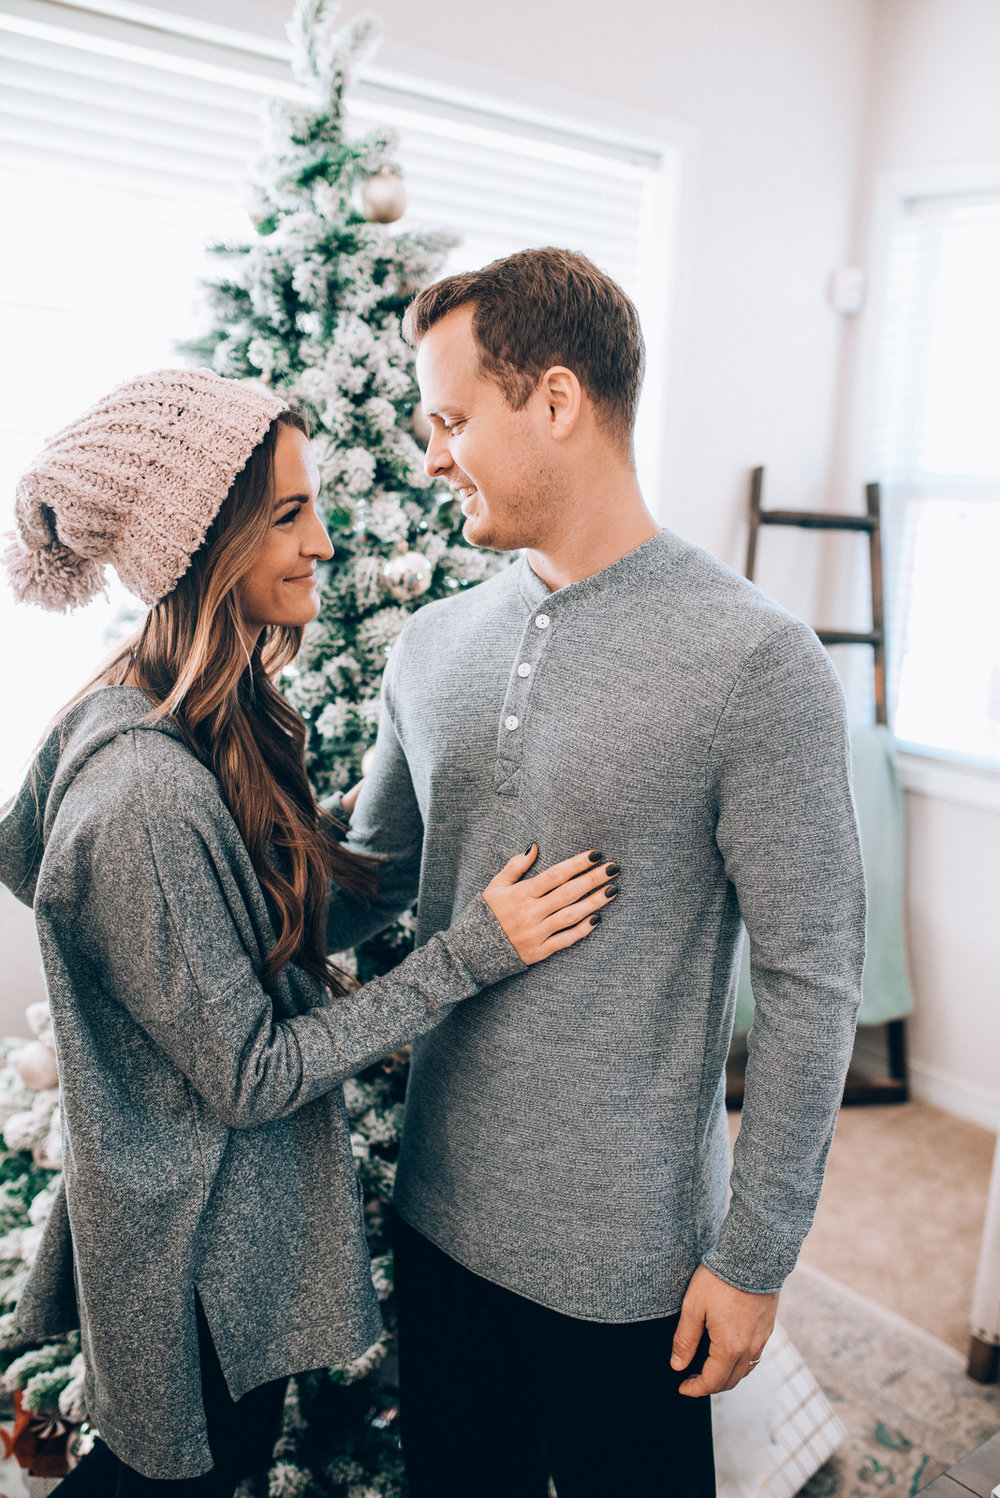 Christmas Couples Photos - Denver-Boulder wedding photographer (41 of 72).jpg